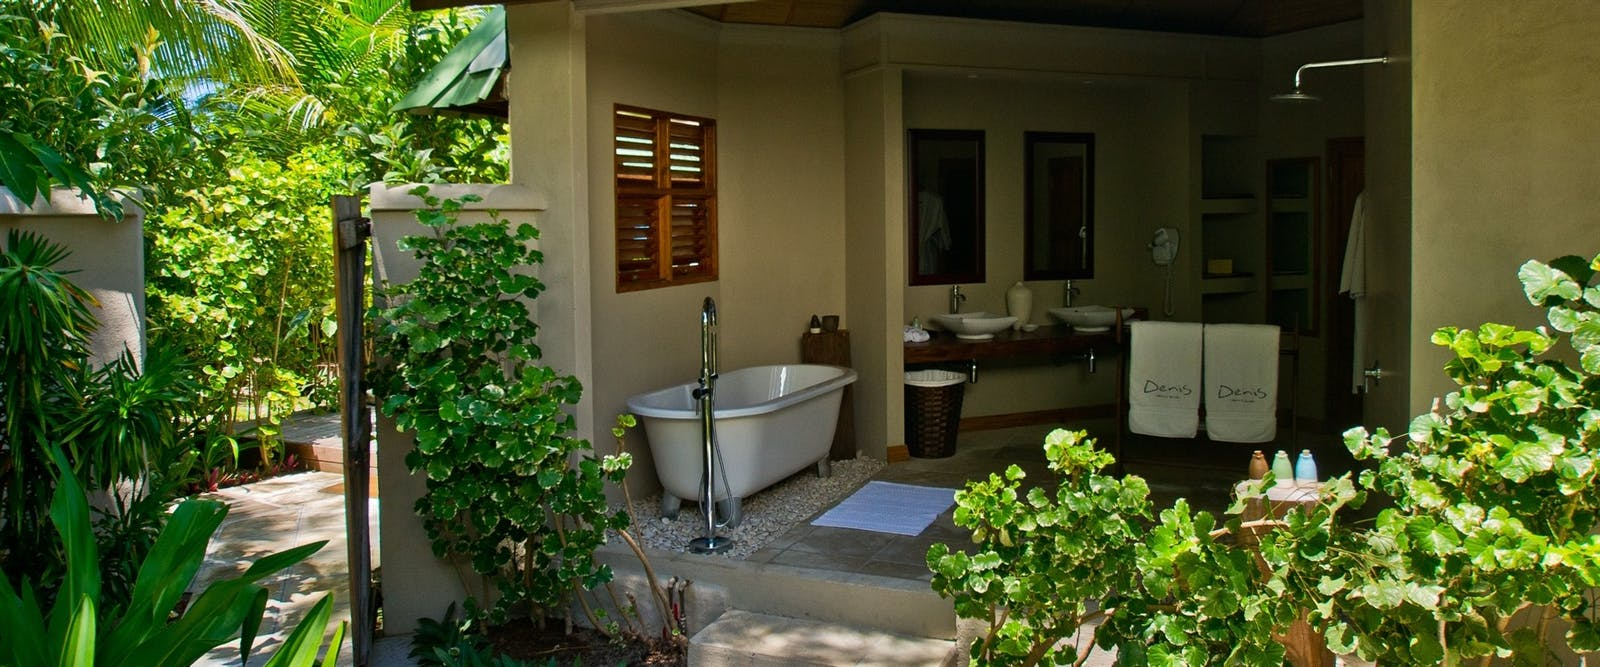 Outdoor Bathroom at Denis Private Island, Seychelles